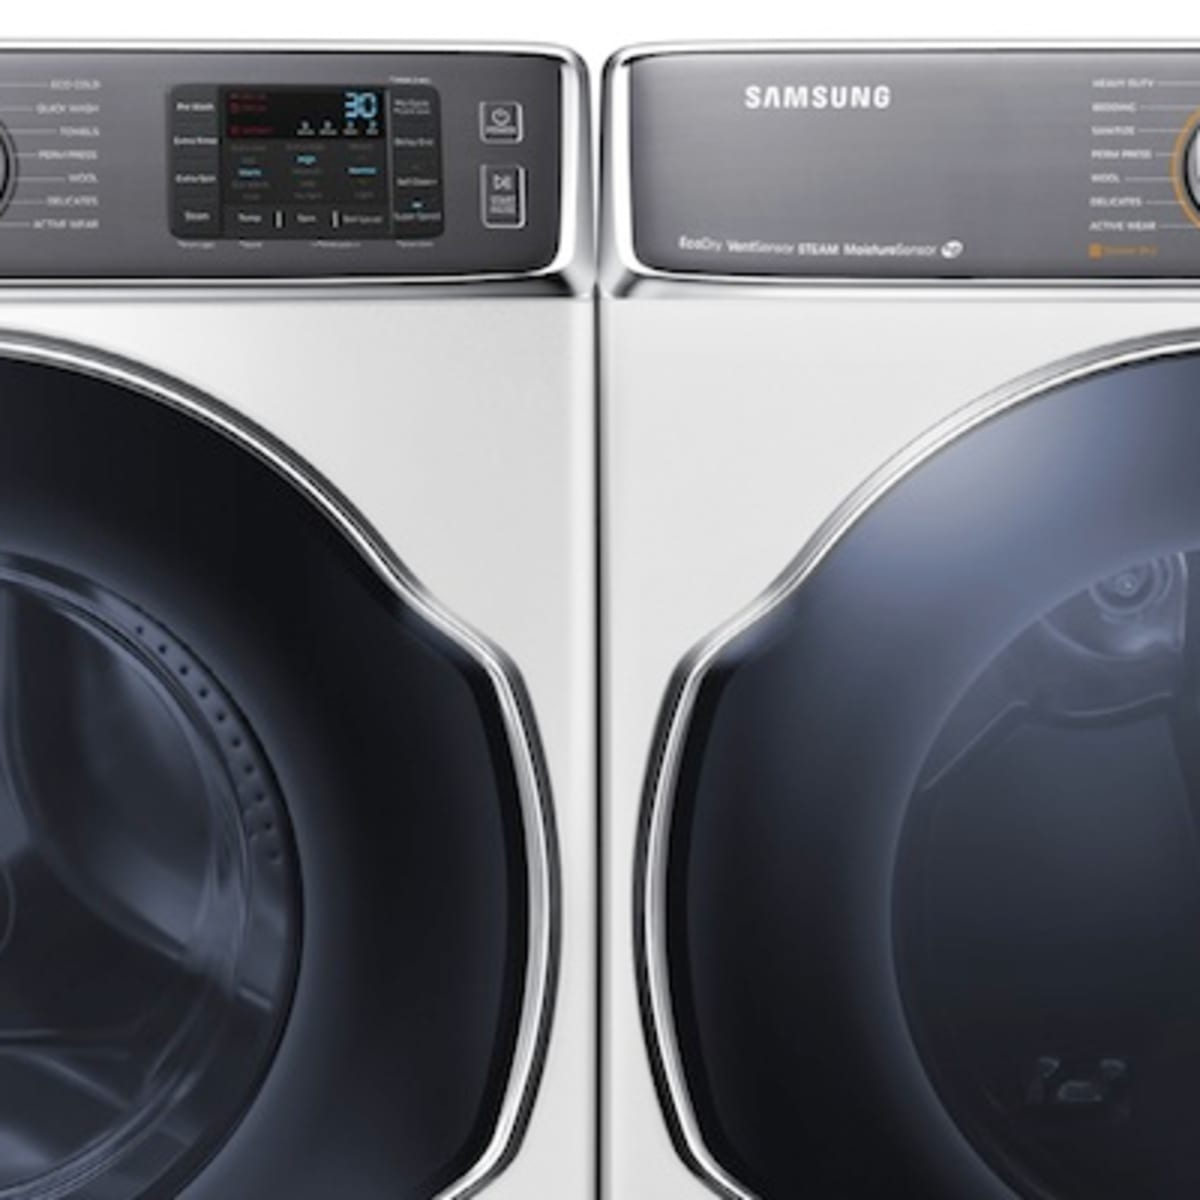 Samsung To Show Off World's Largest Washing Machine at CES 2014